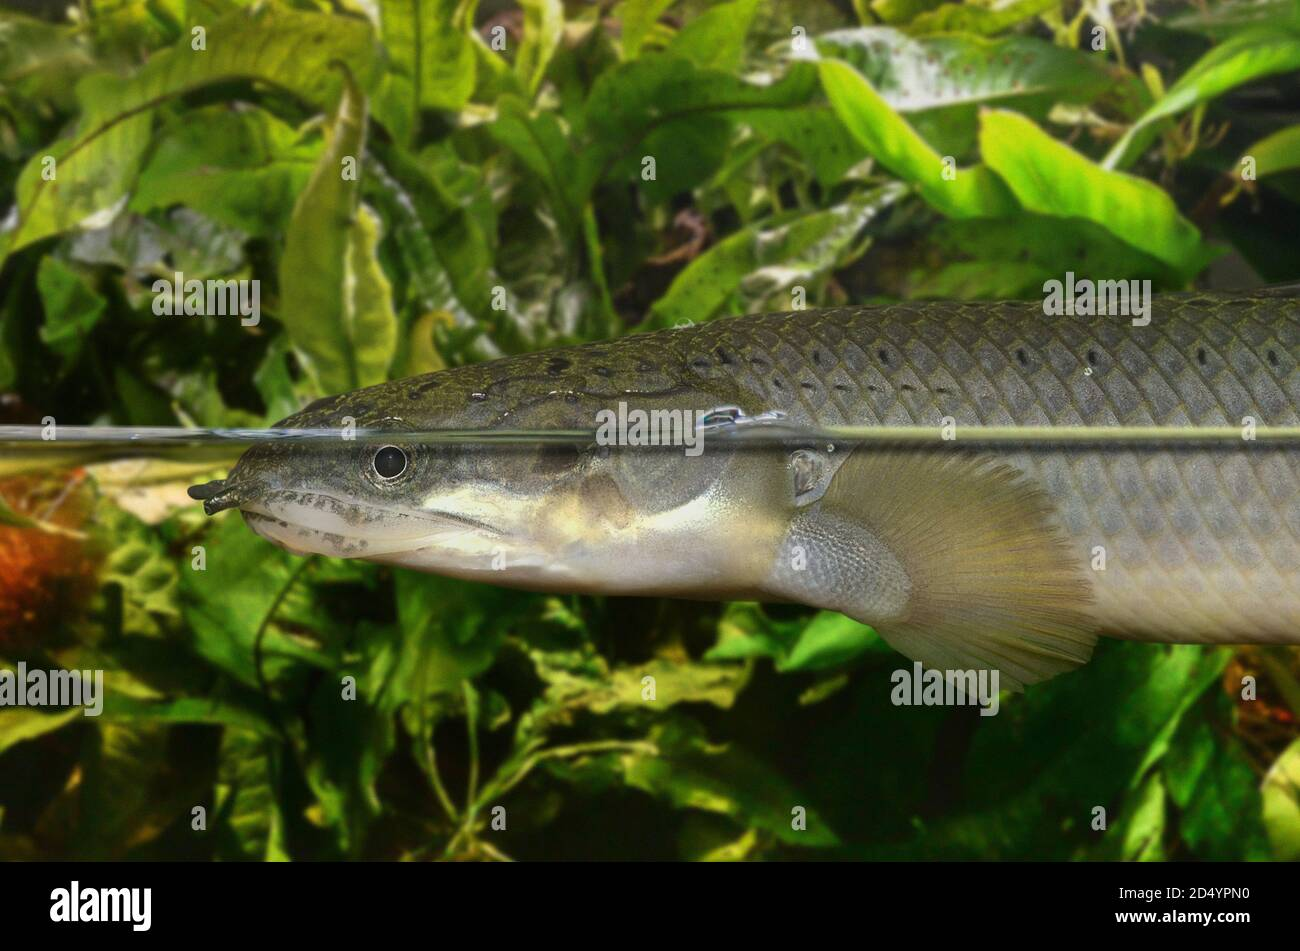 Bichirs High Resolution Stock Photography And Images Alamy